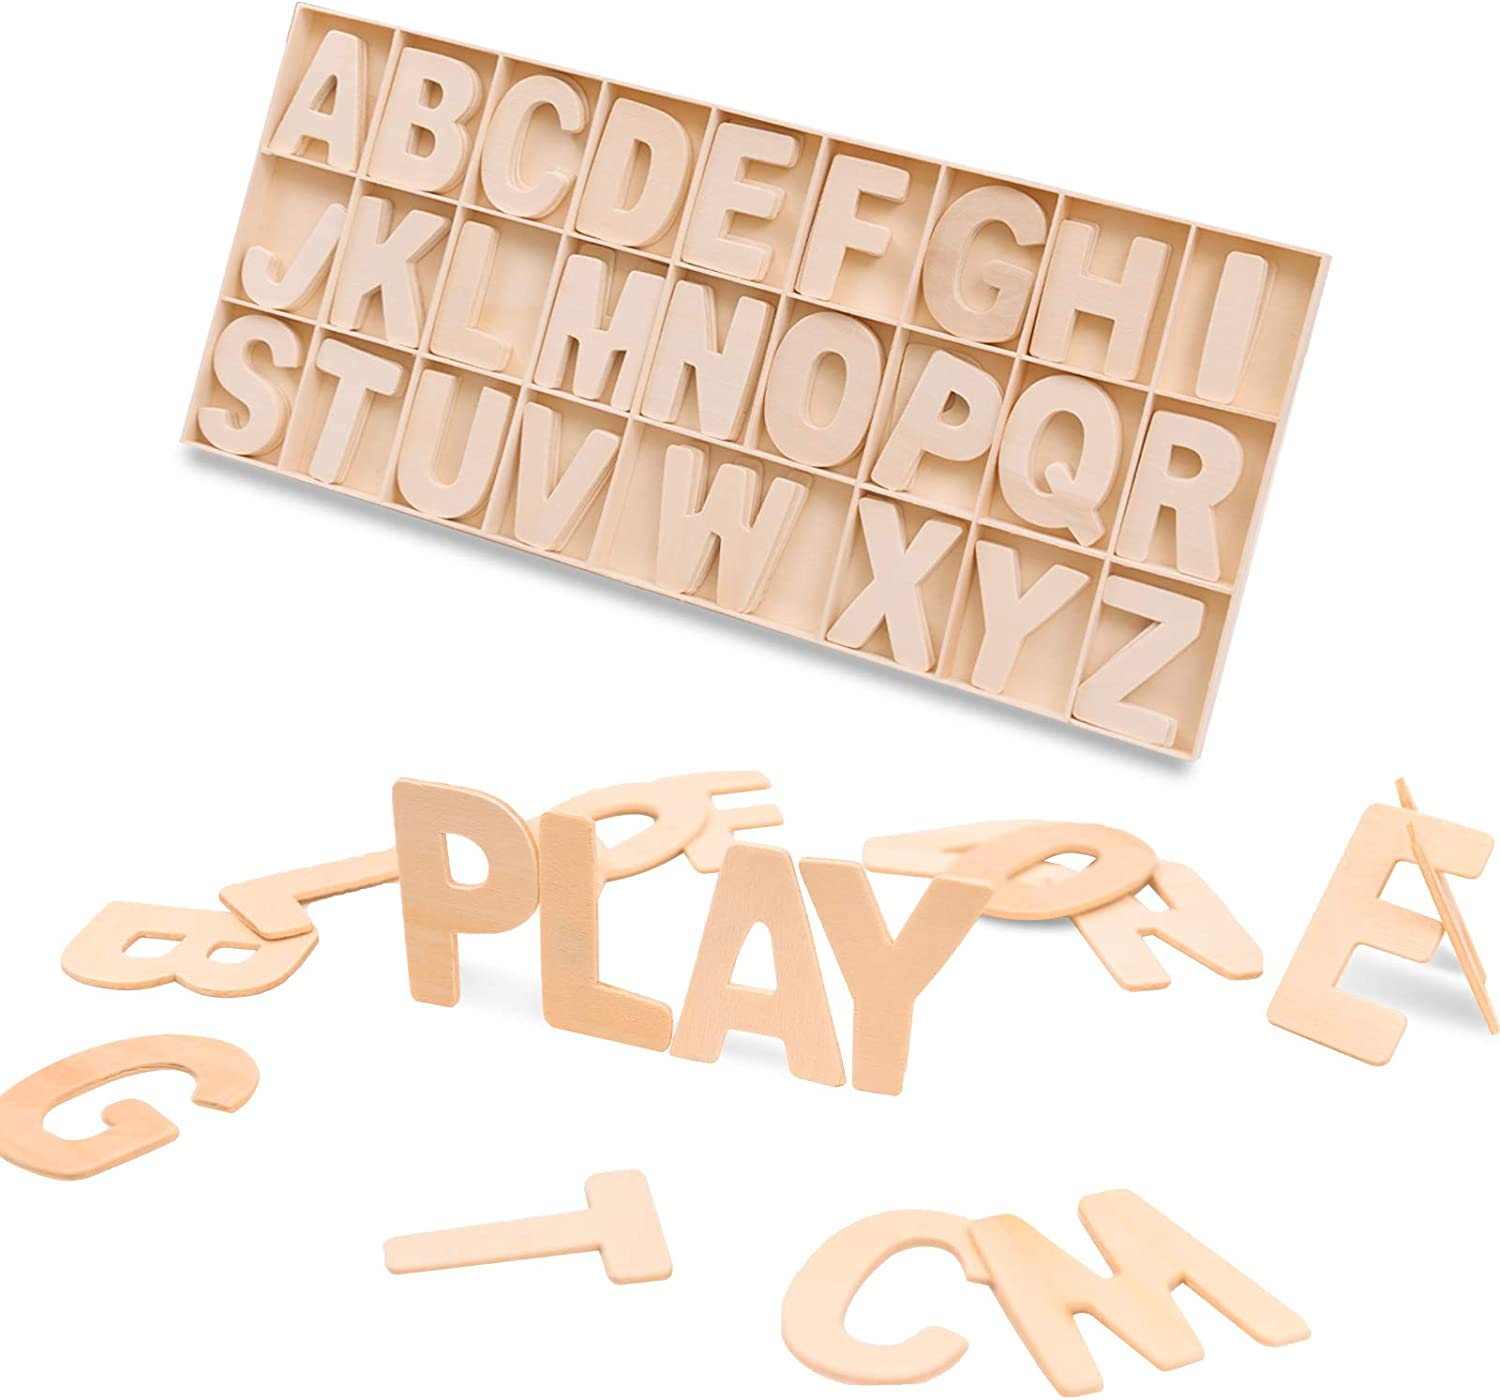 2 Inch Wooden Letters, 104 Pcs Unfinished Wood Craft Letters Blank Wooden Alphabet Letters for Home Decor, DIY Crafts, Painting, Signs, Party Decorations, with Storage Tray